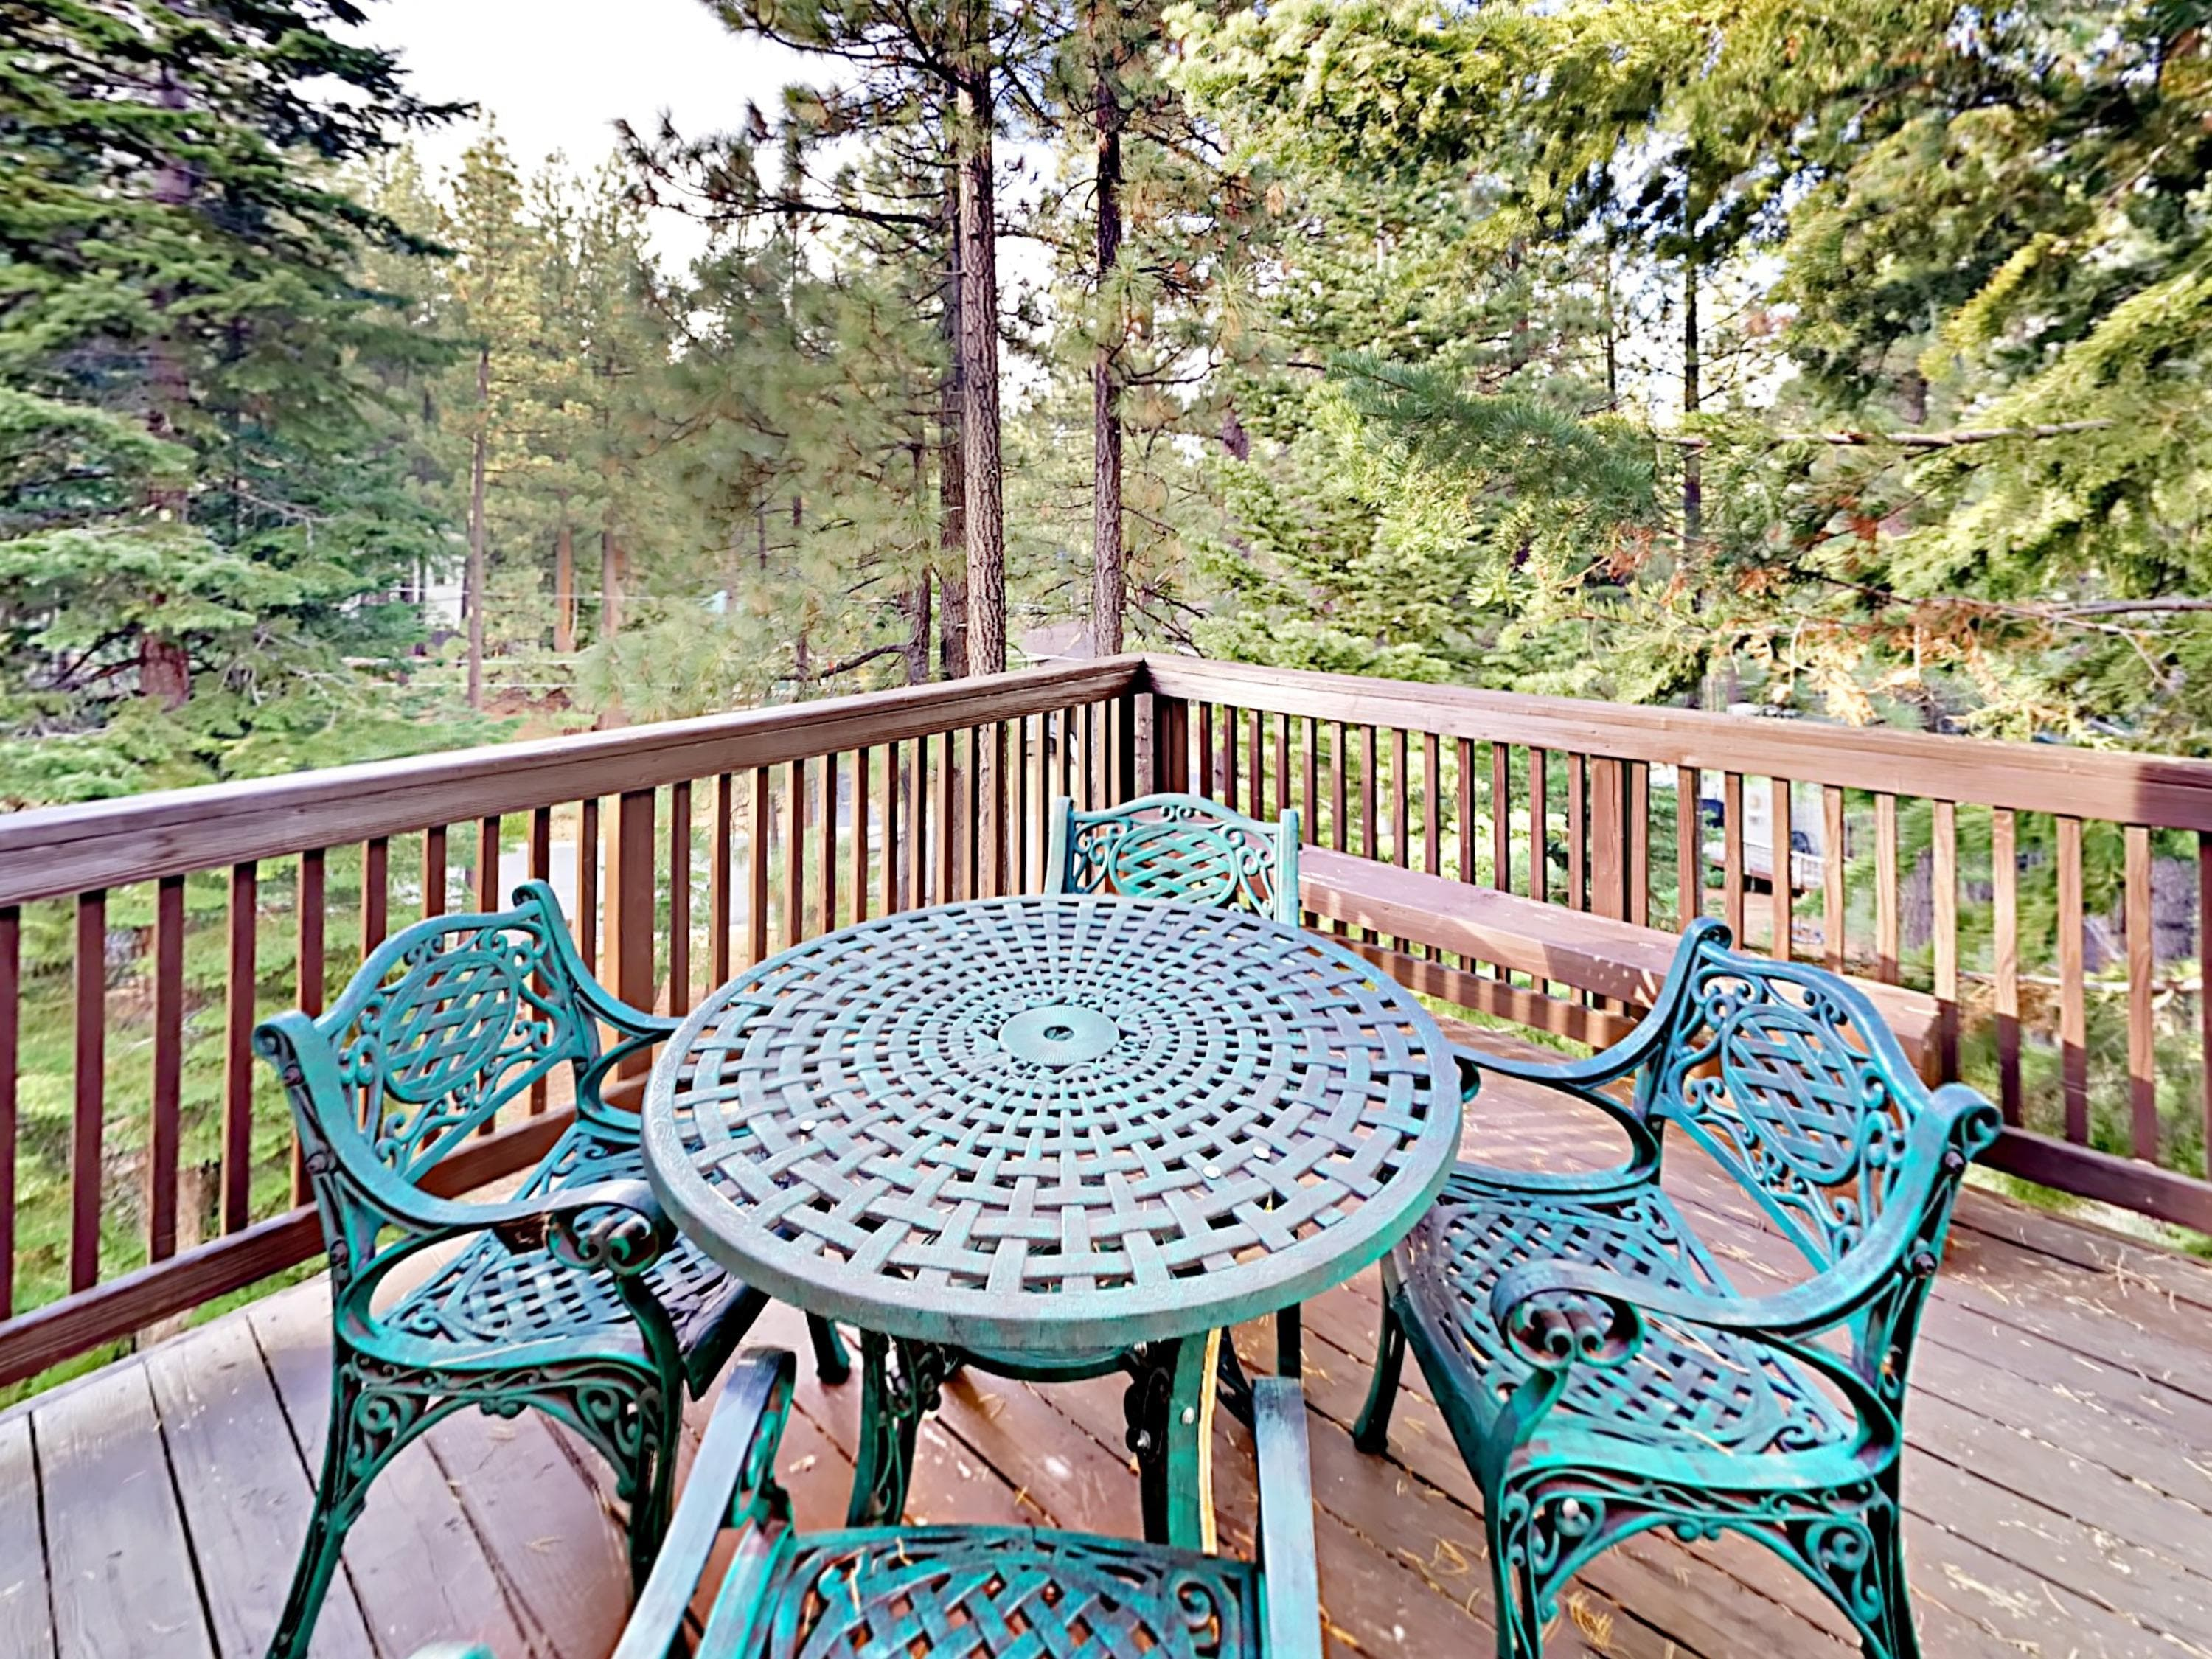 Outdoor enthusiasts will appreciate supreme indoor/outdoor living with 2 decks and forested views.